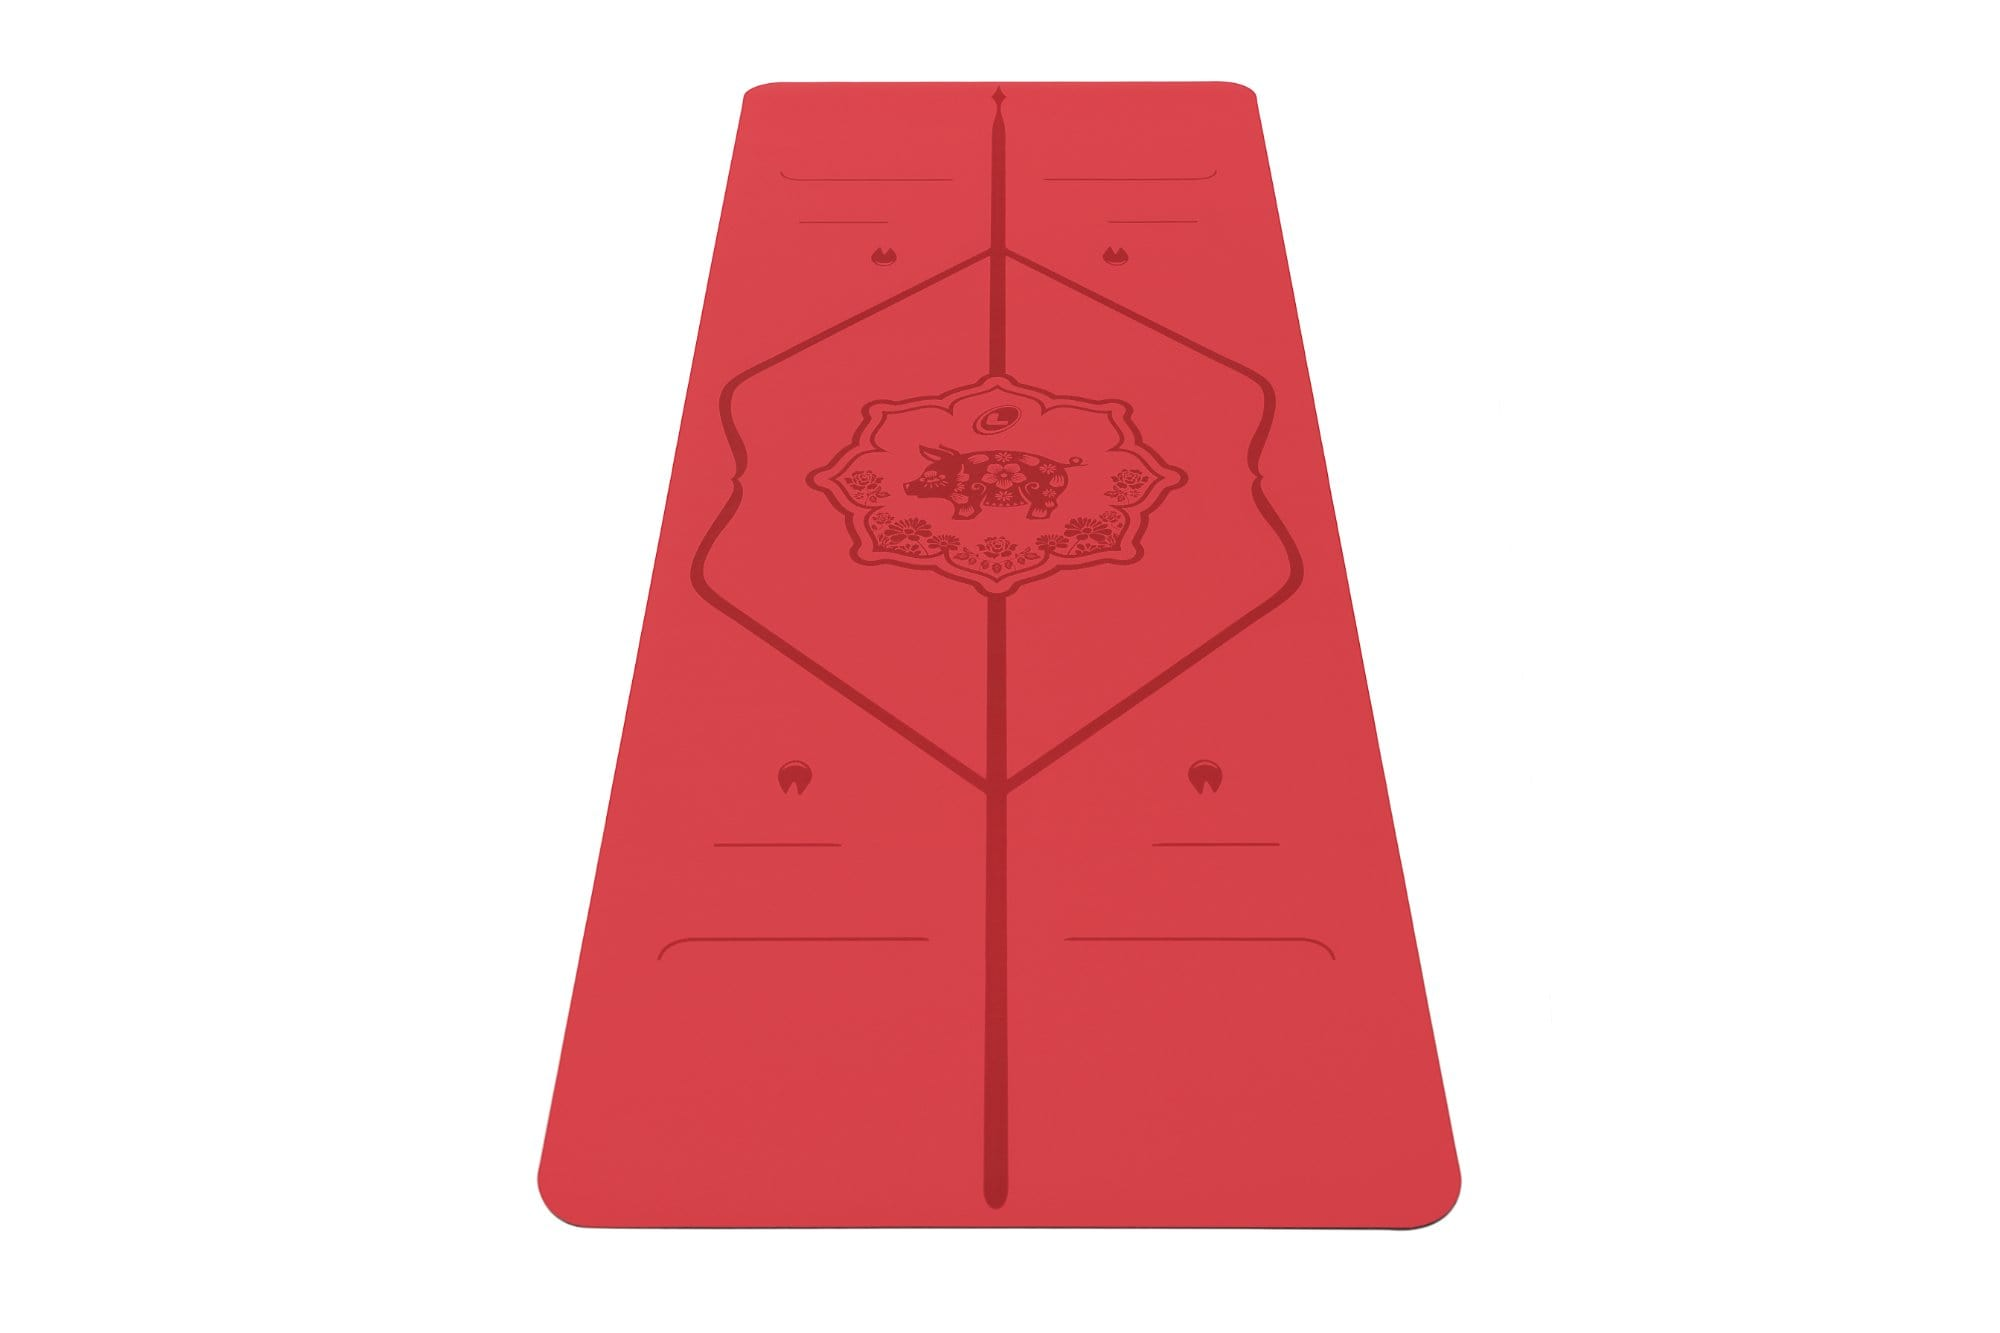 Portrait view of Year of the pig Yoga mat from Liforme